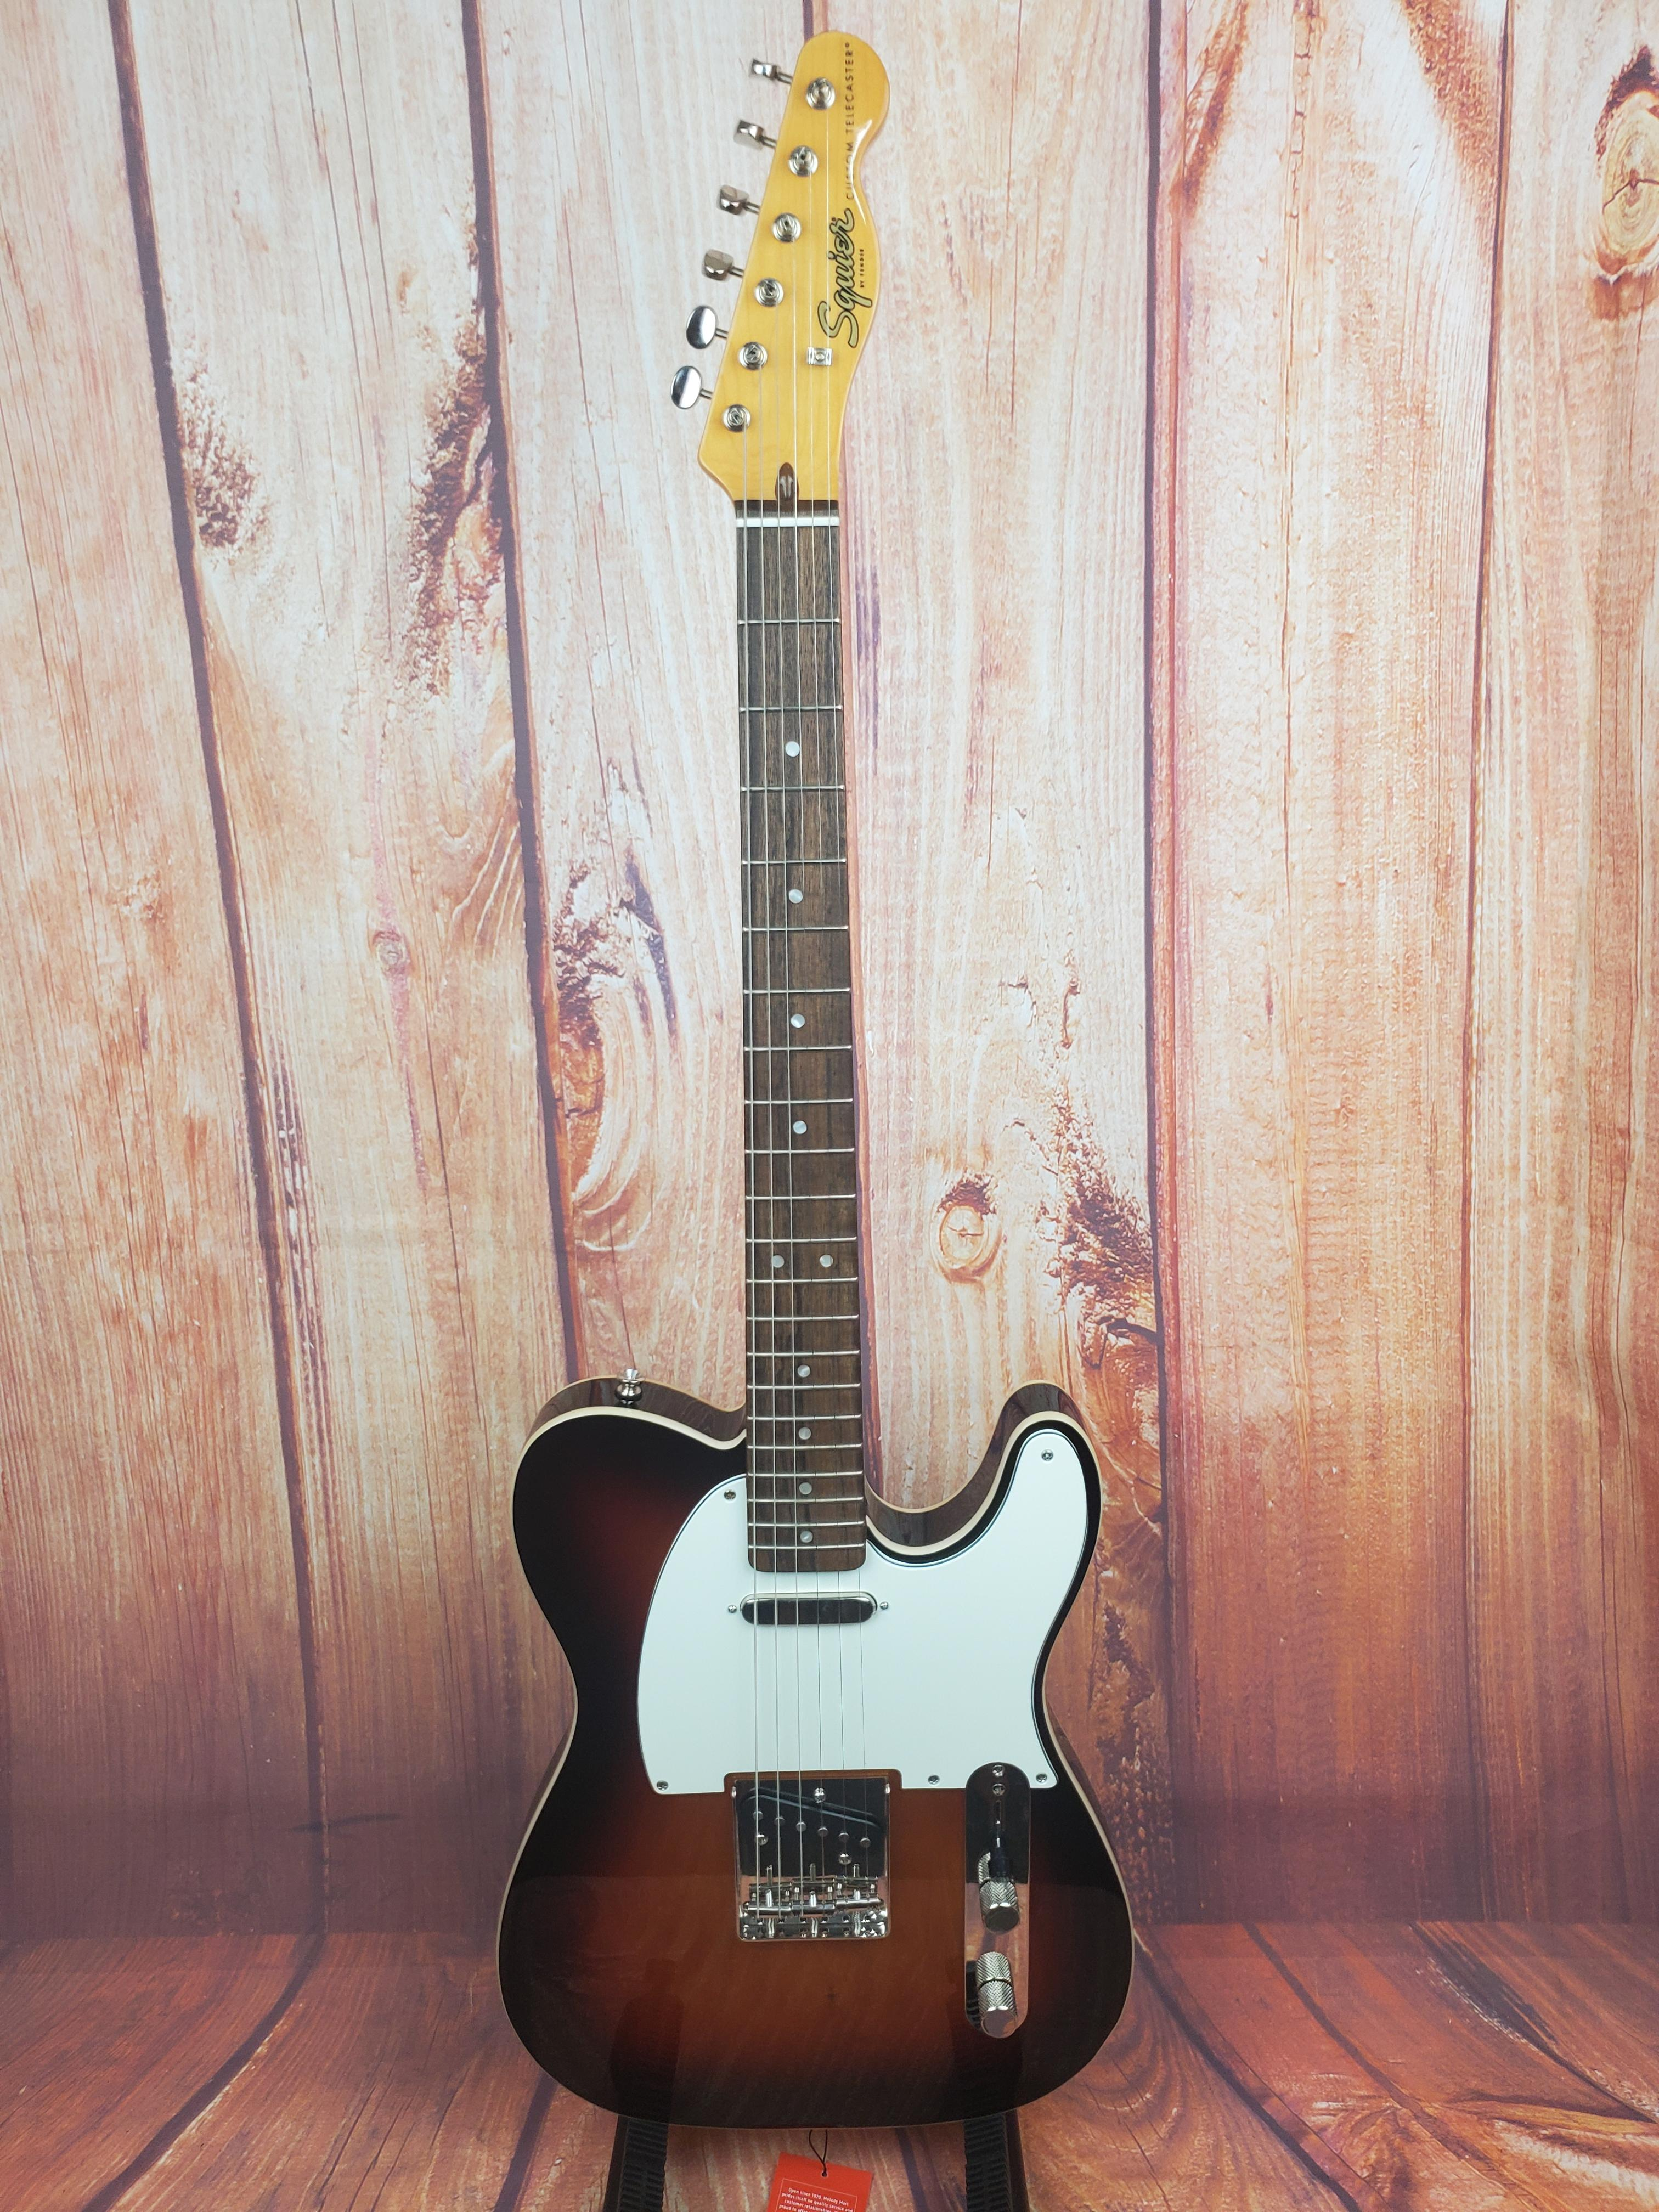 Used-Squier Classic Vibe 60s Customer Telecaster